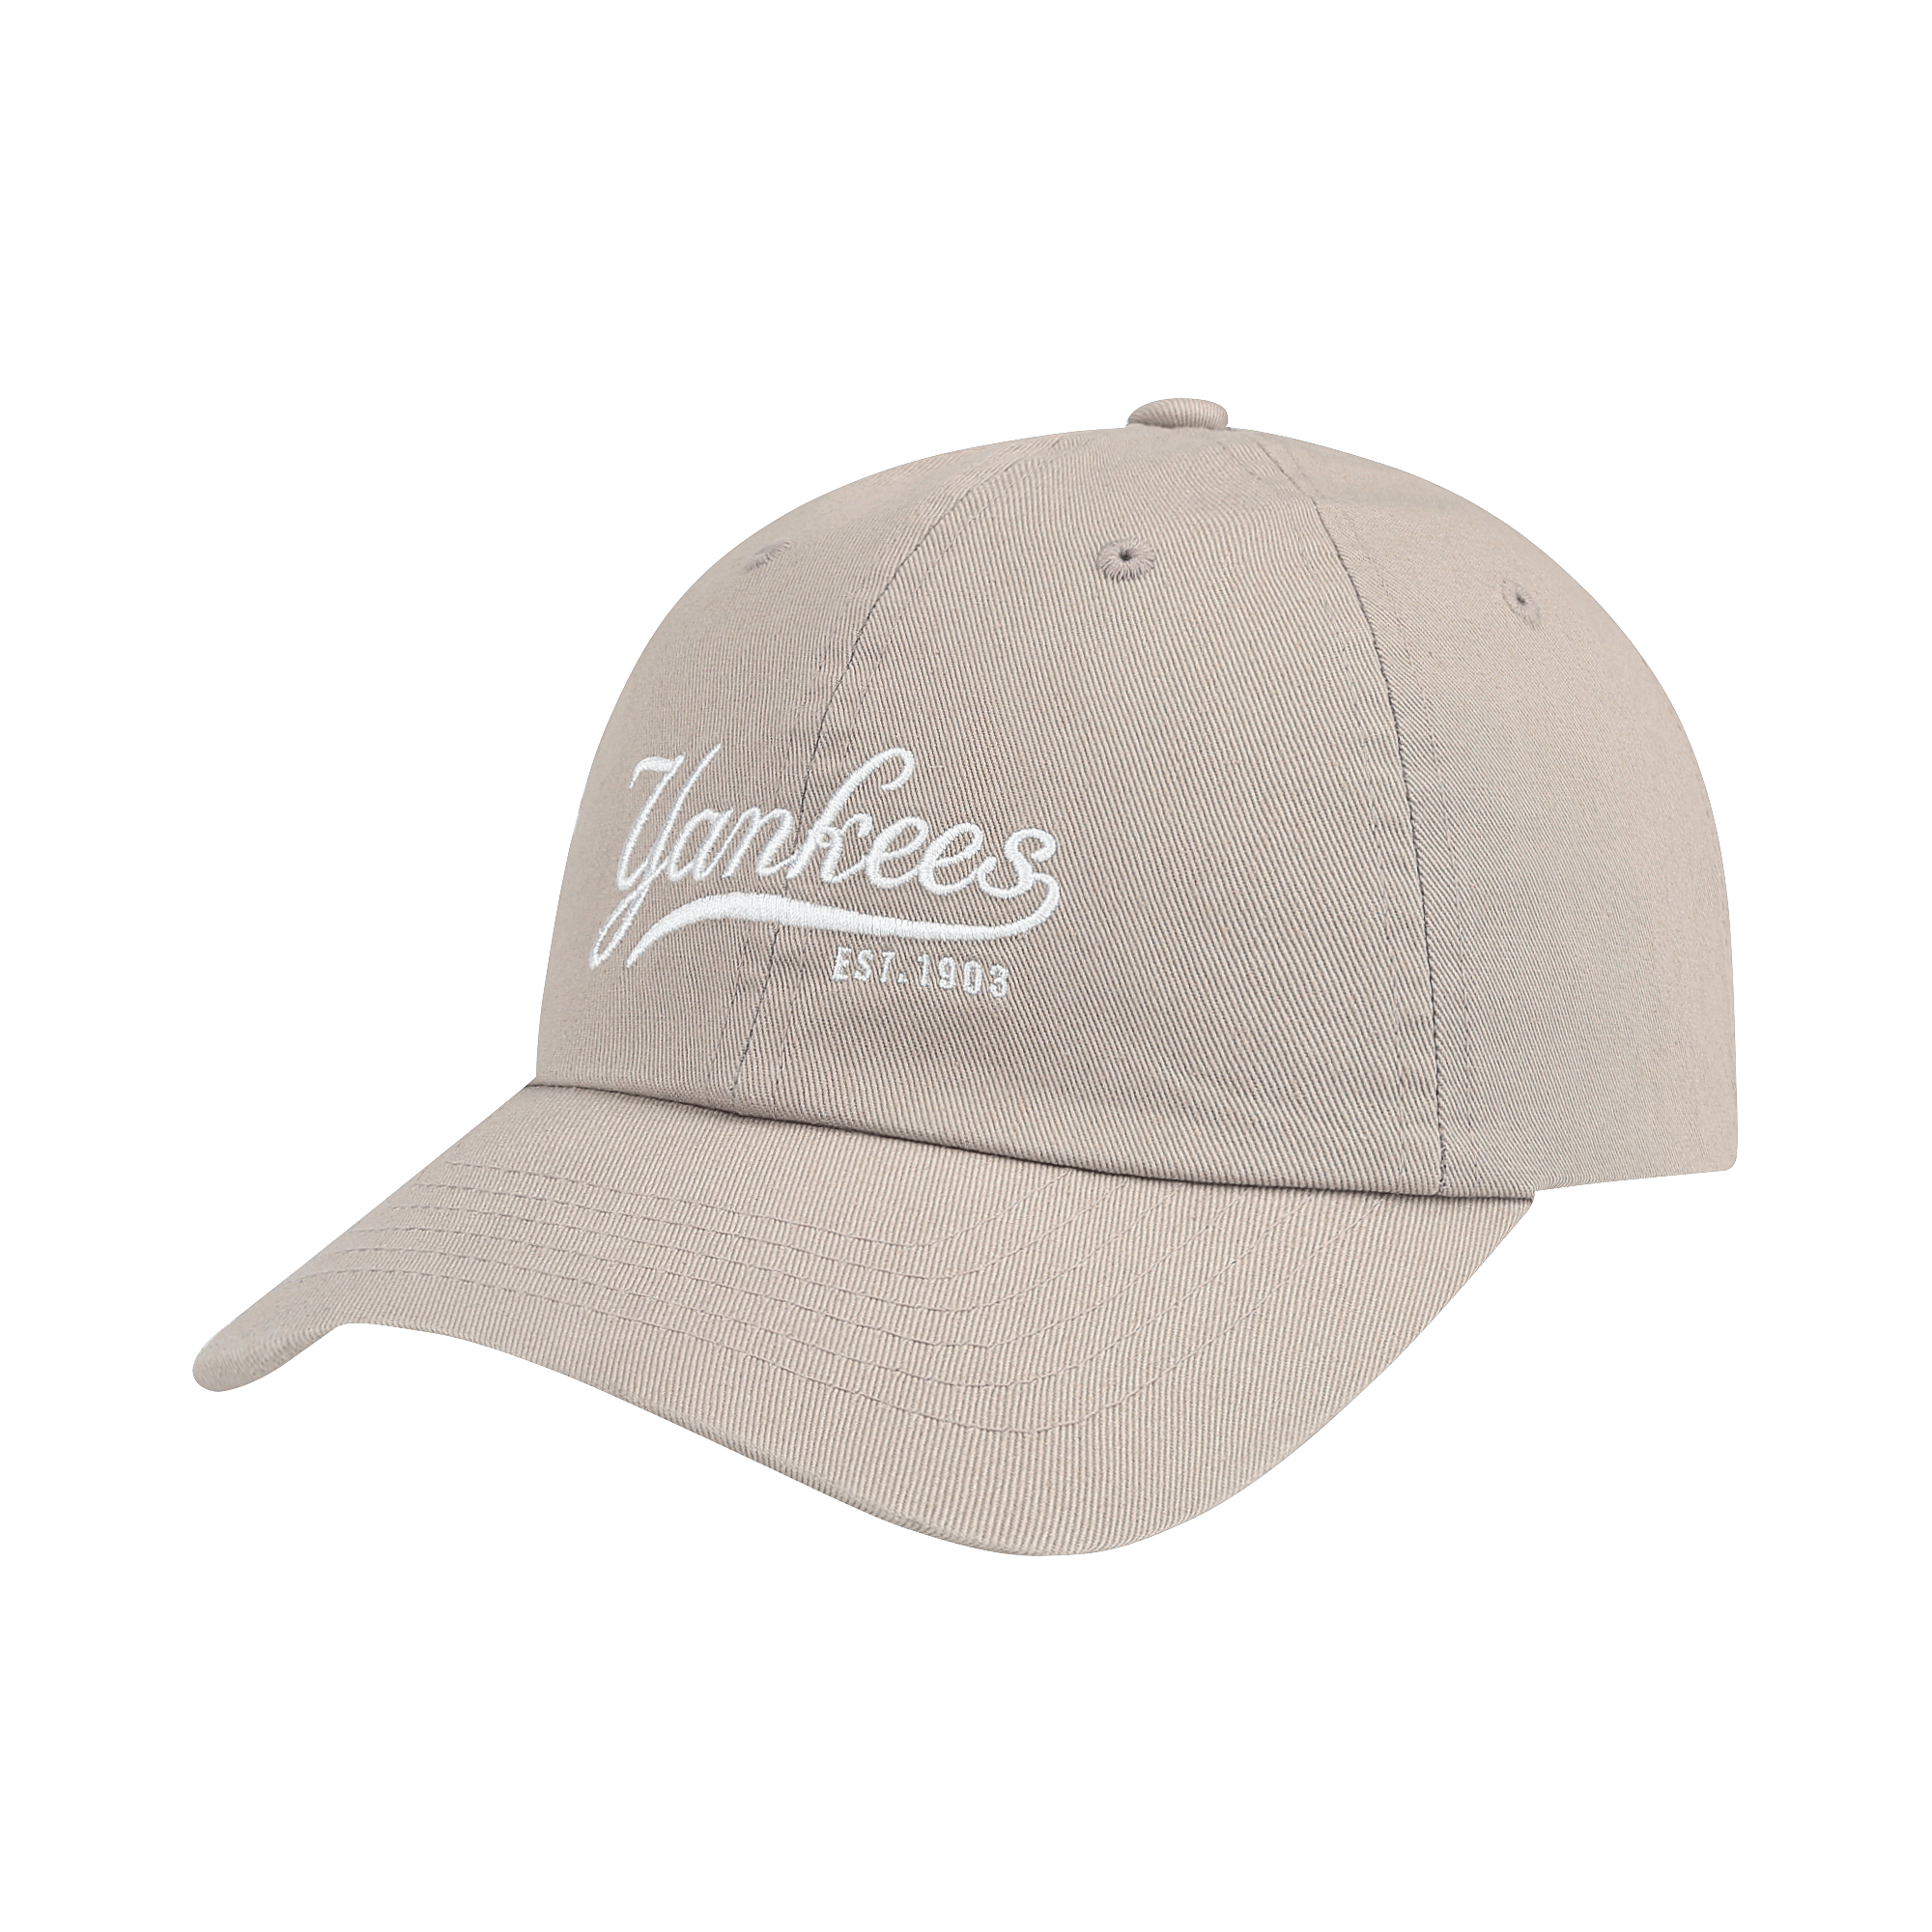 NEW YORK YANKEES CURSIVE BALL CAP